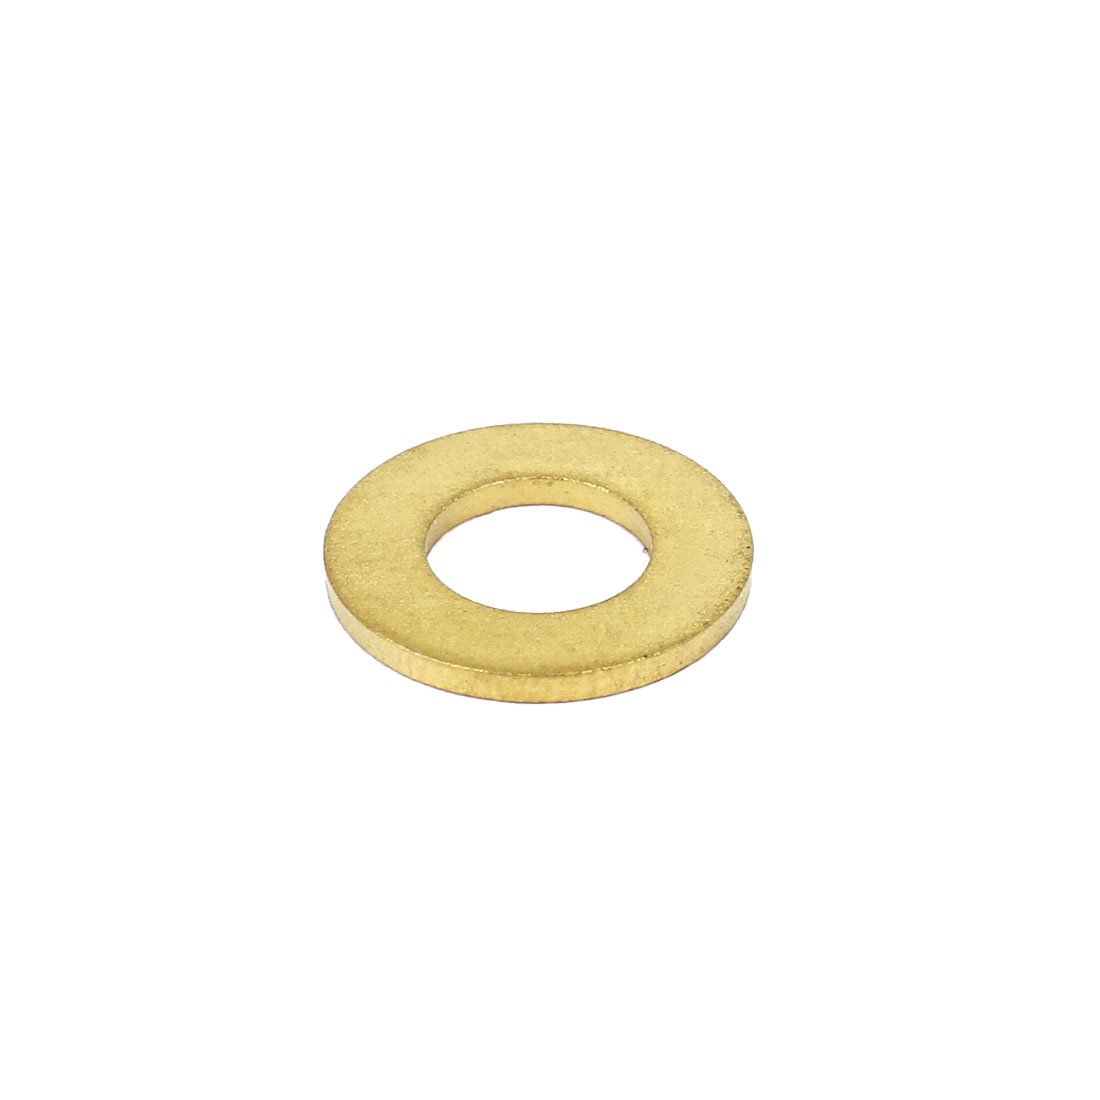 M8 Titanium Ti Flat Spacer Washer Gold Tone for Bicycle Cycling Motorcycle Car